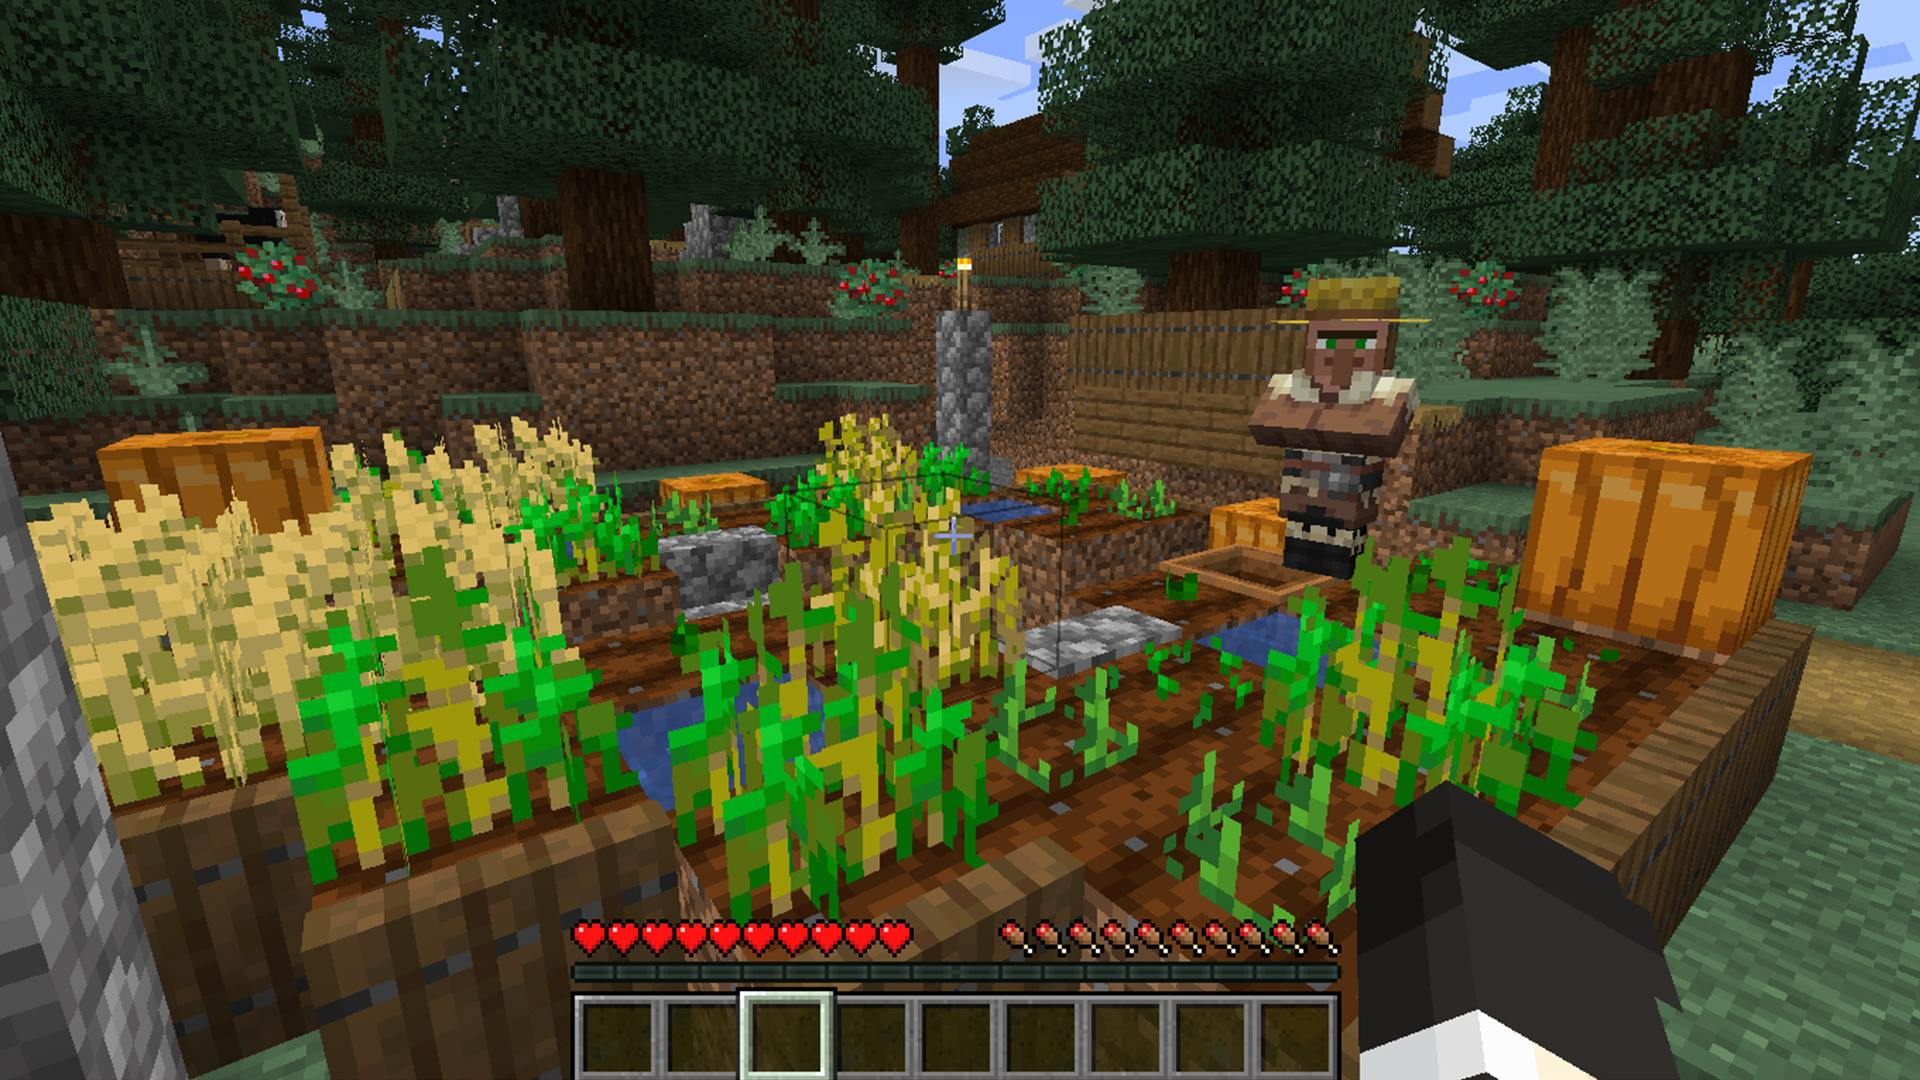 Best Minecraft Texture Packs For Java Edition In 2021 Pcgamesn